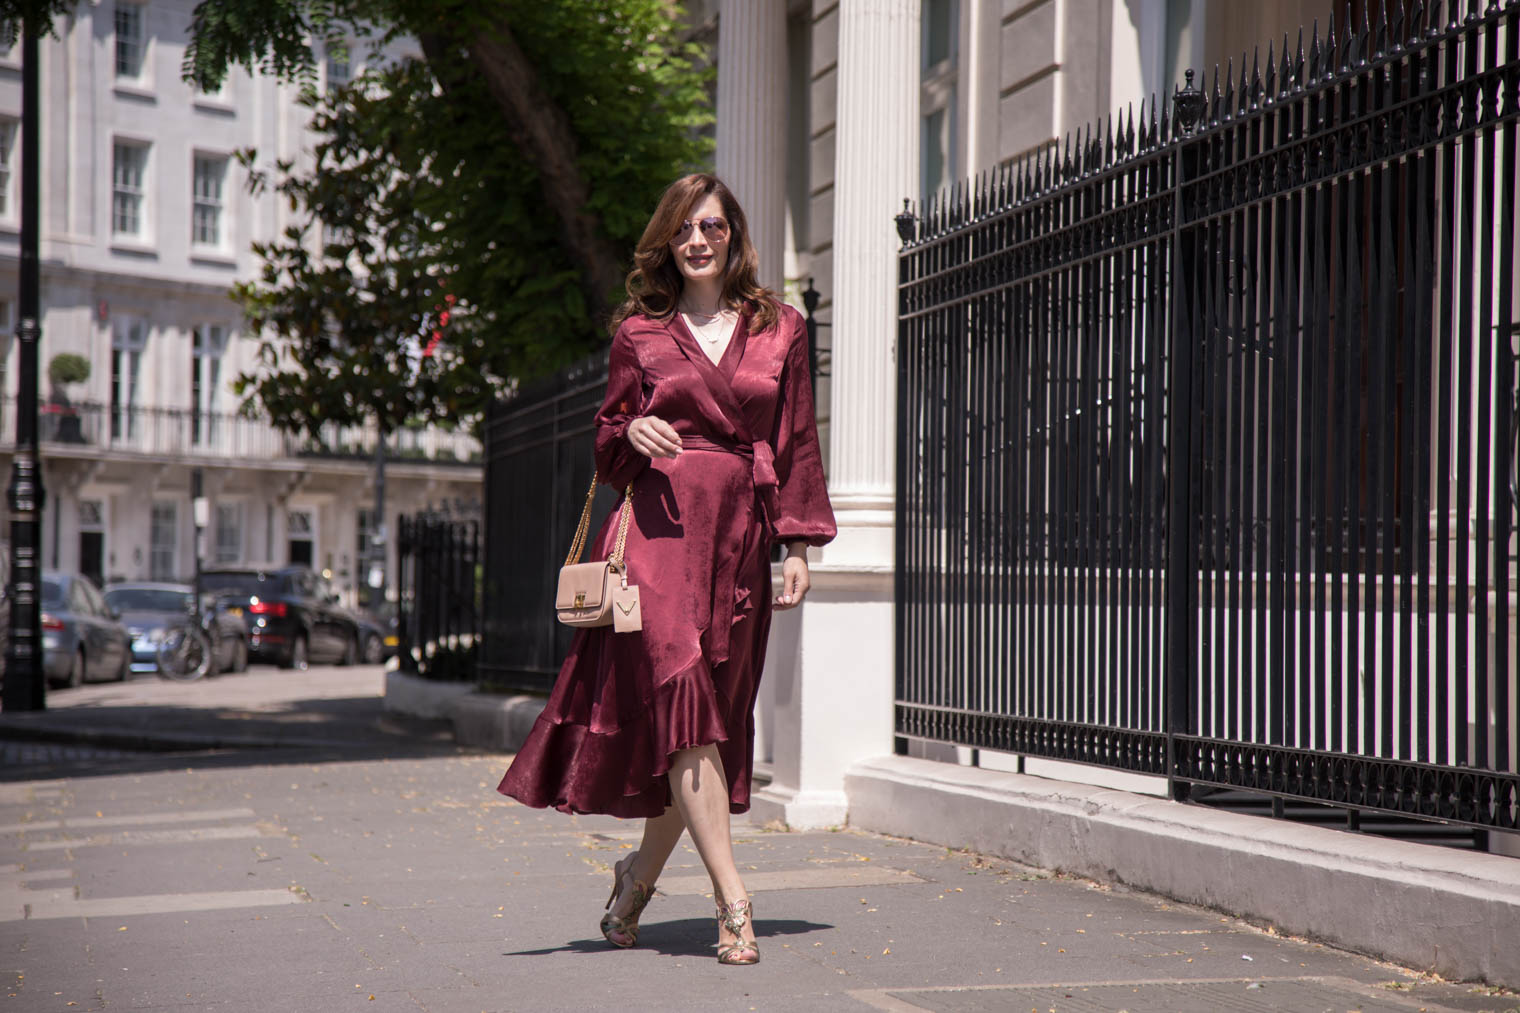 Petra from Chic Journal wearing burgundy wrap dress